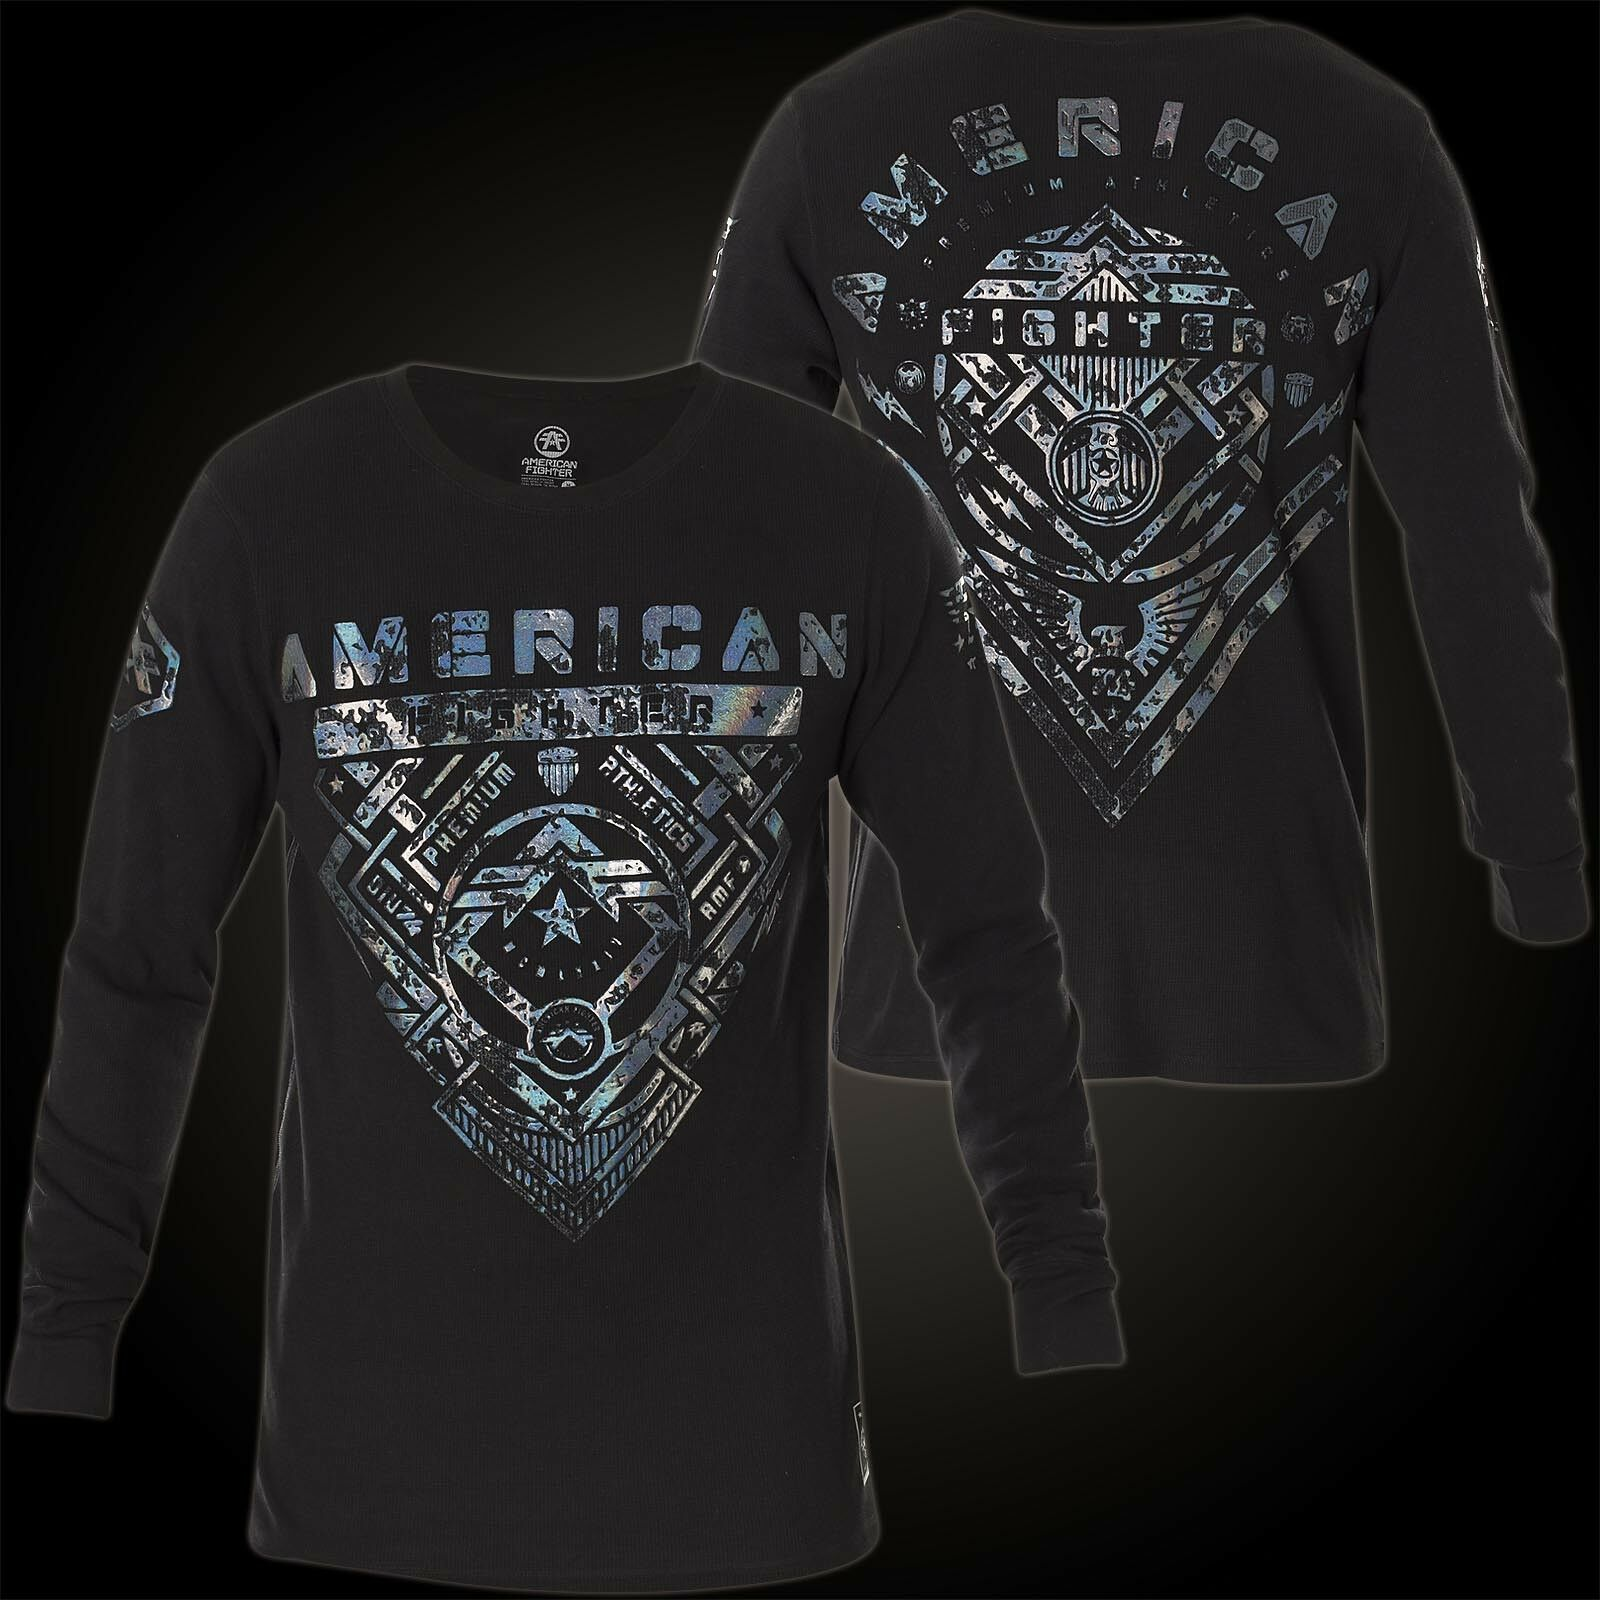 American Fighter by Affliction Thermal Idlewild Black